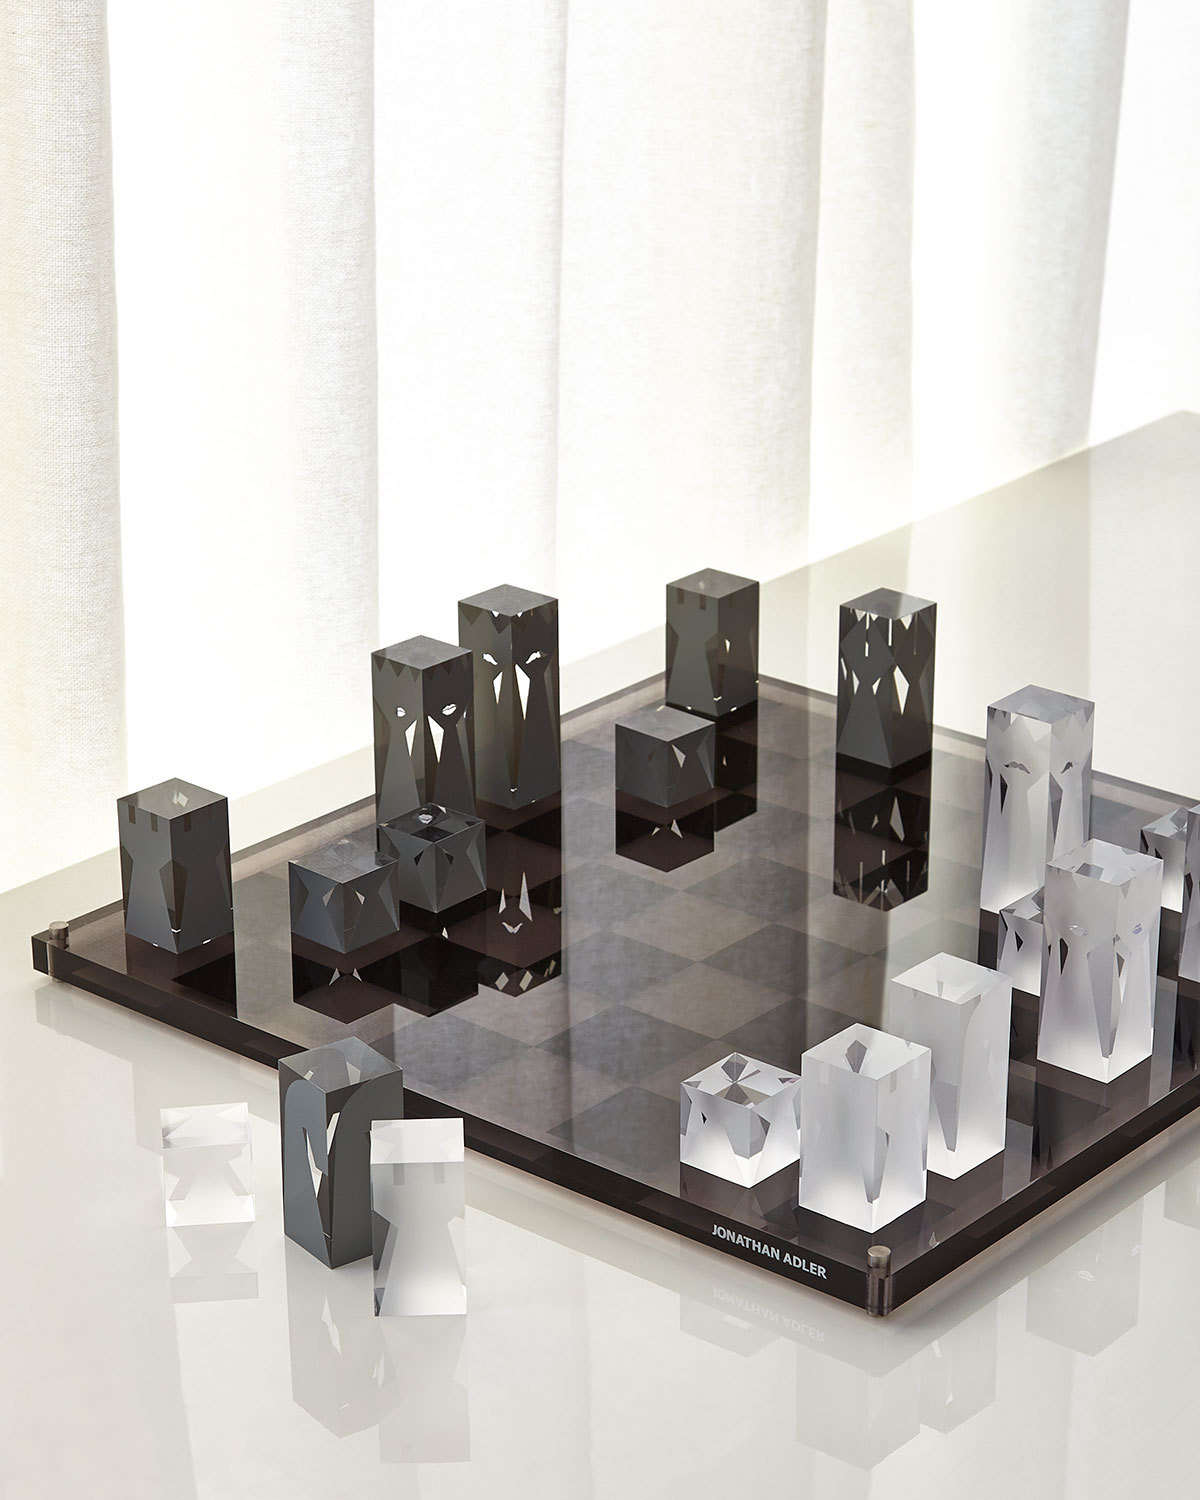 Jonathan Adler #Jonathan Adler#product#toy#game#glass#material#black&white#transparency#transluscent#geometric